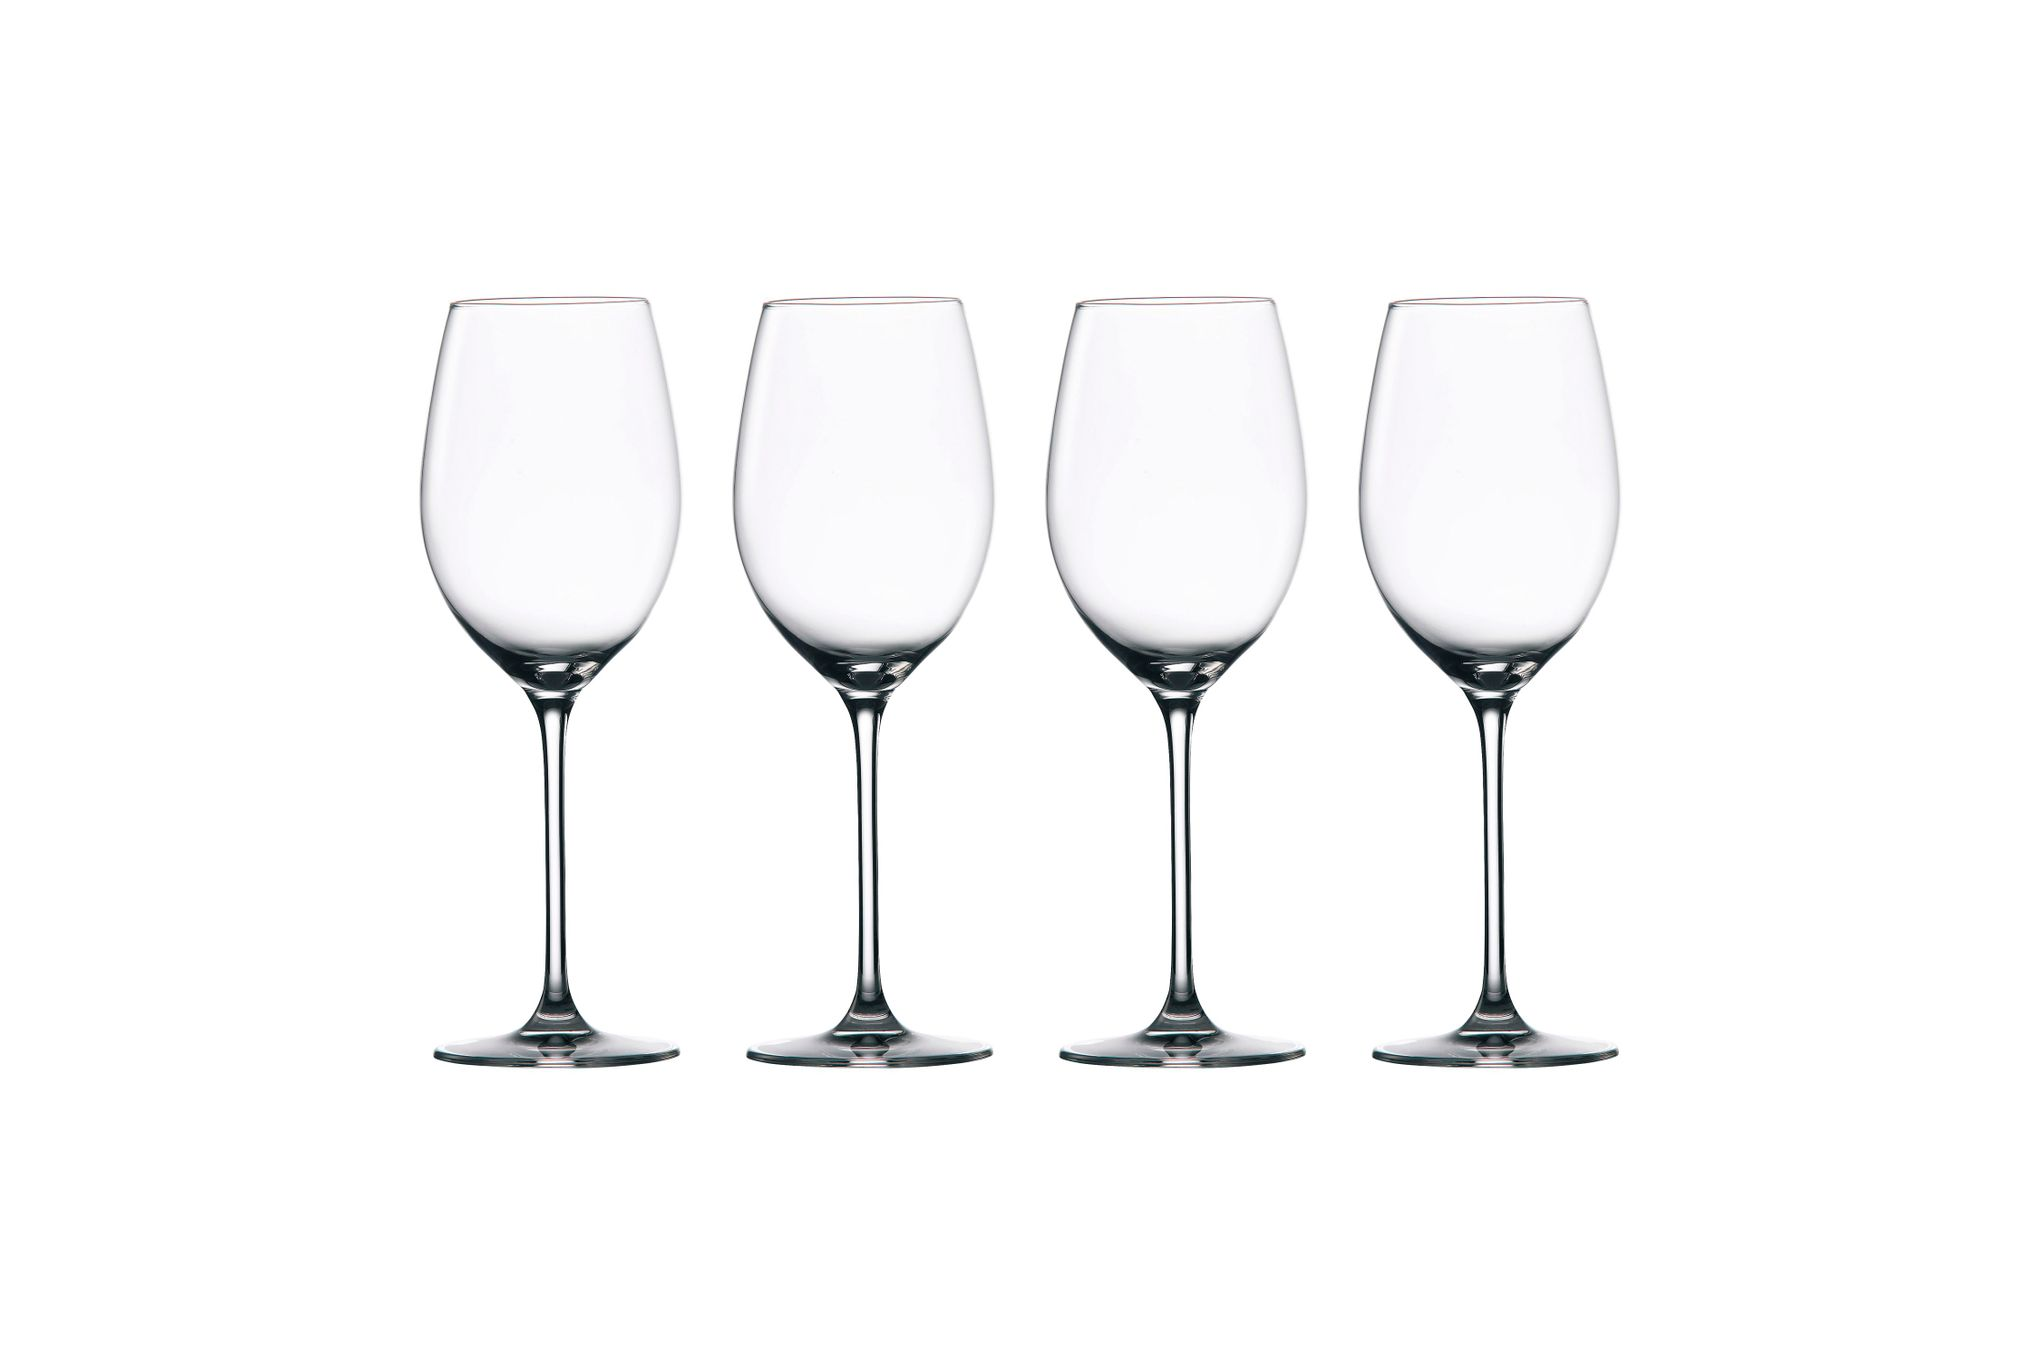 Waterford Marquis Moments Set of 4 White Wine Glasses 380ml thumb 2